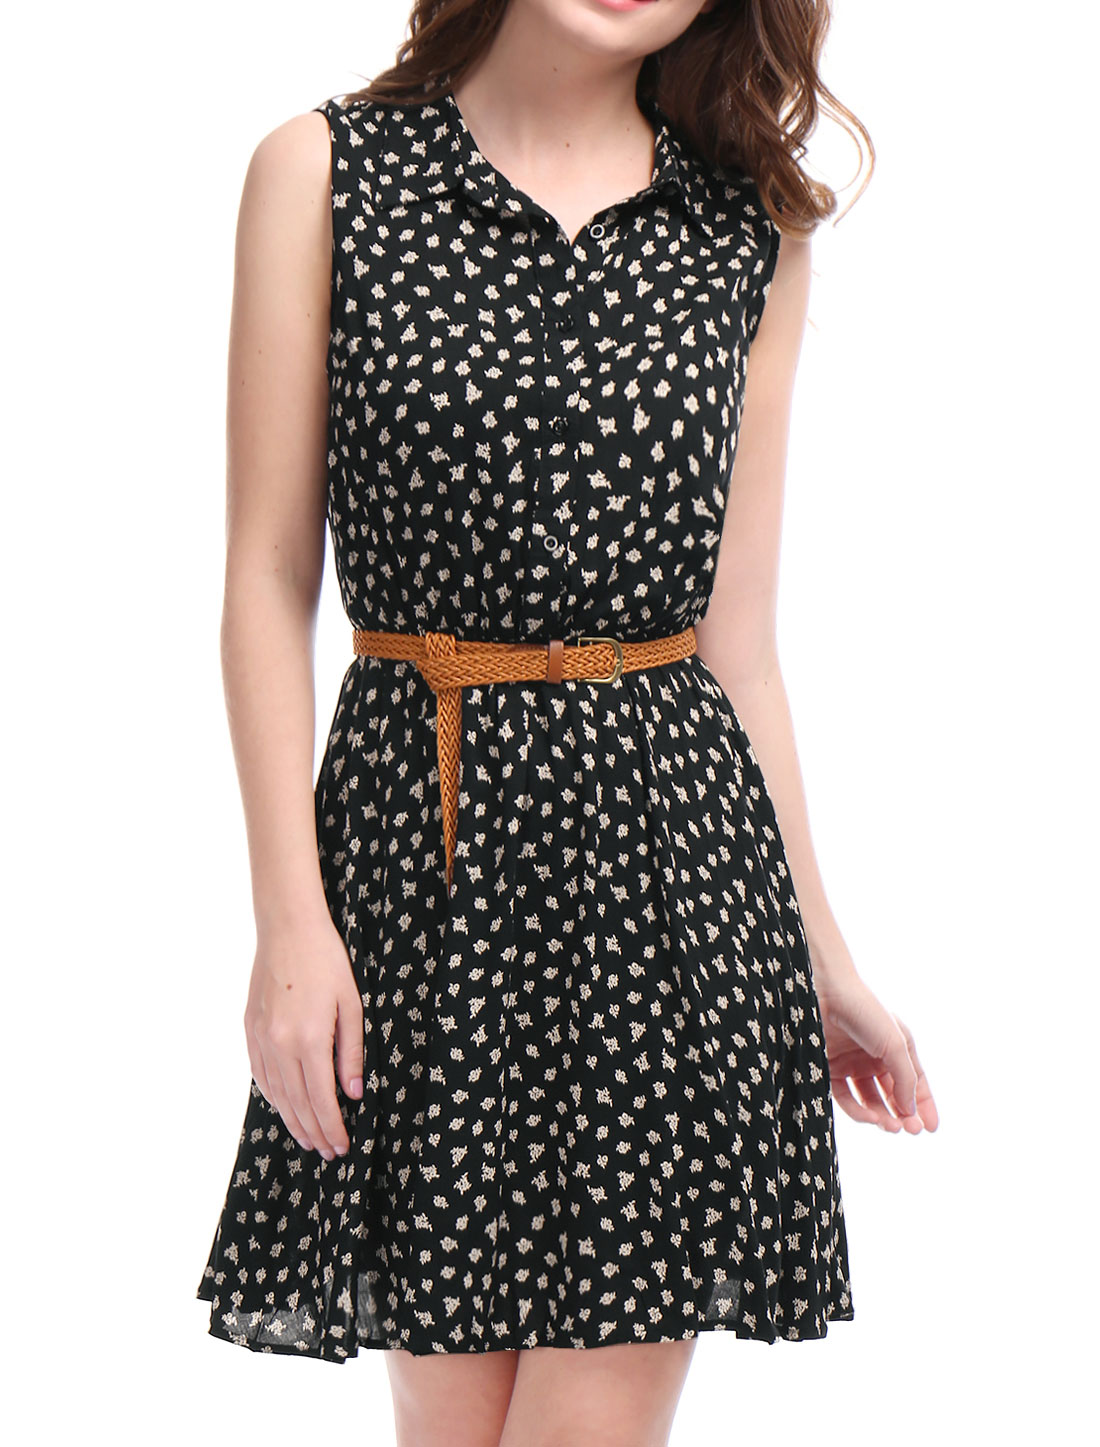 Women Daisy Print Elastic Waist Sleeveless Belted Shirt Dress Black XL